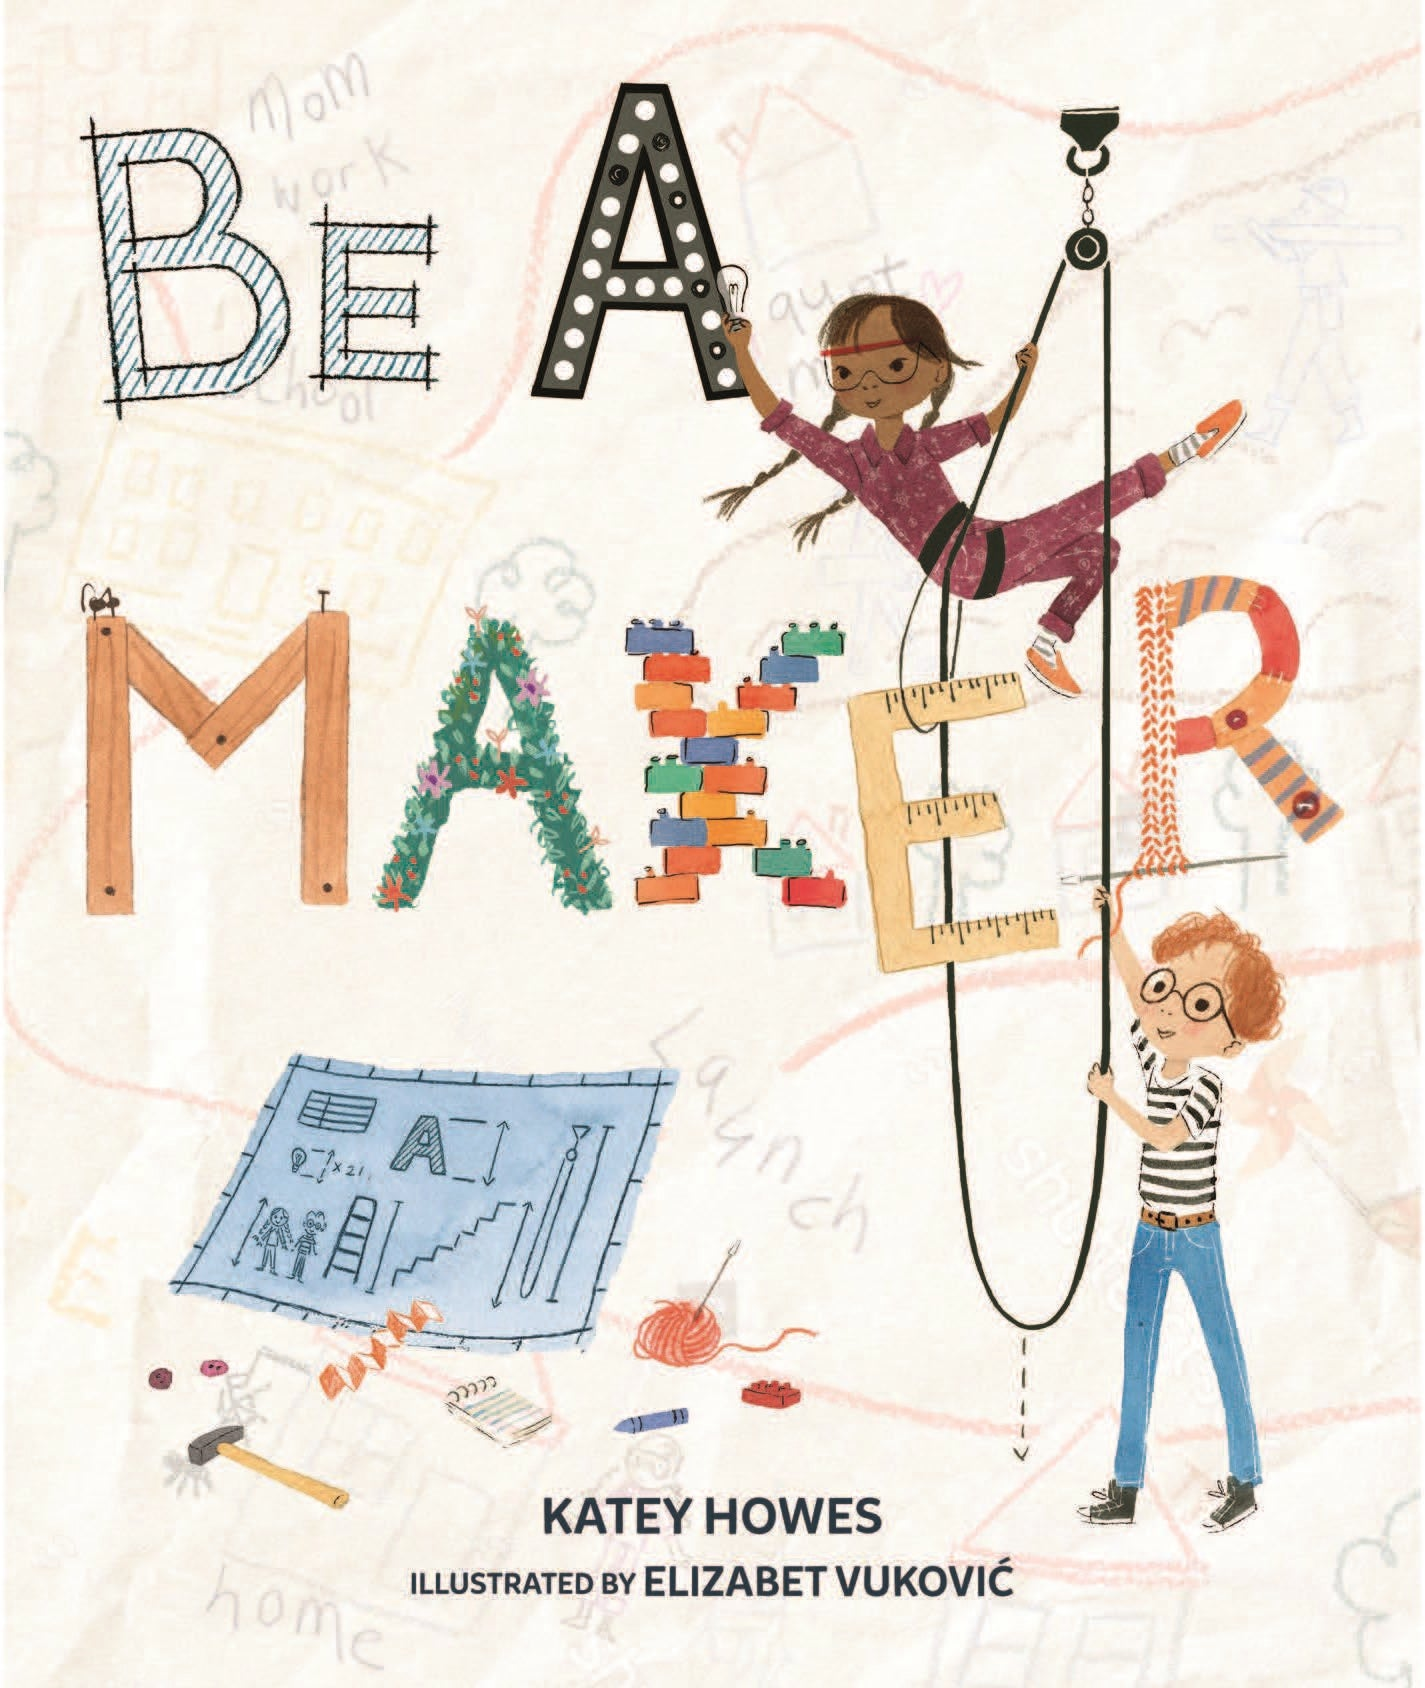 Hardie Grant Books - Be a Maker - last minute gift idea - melbourne